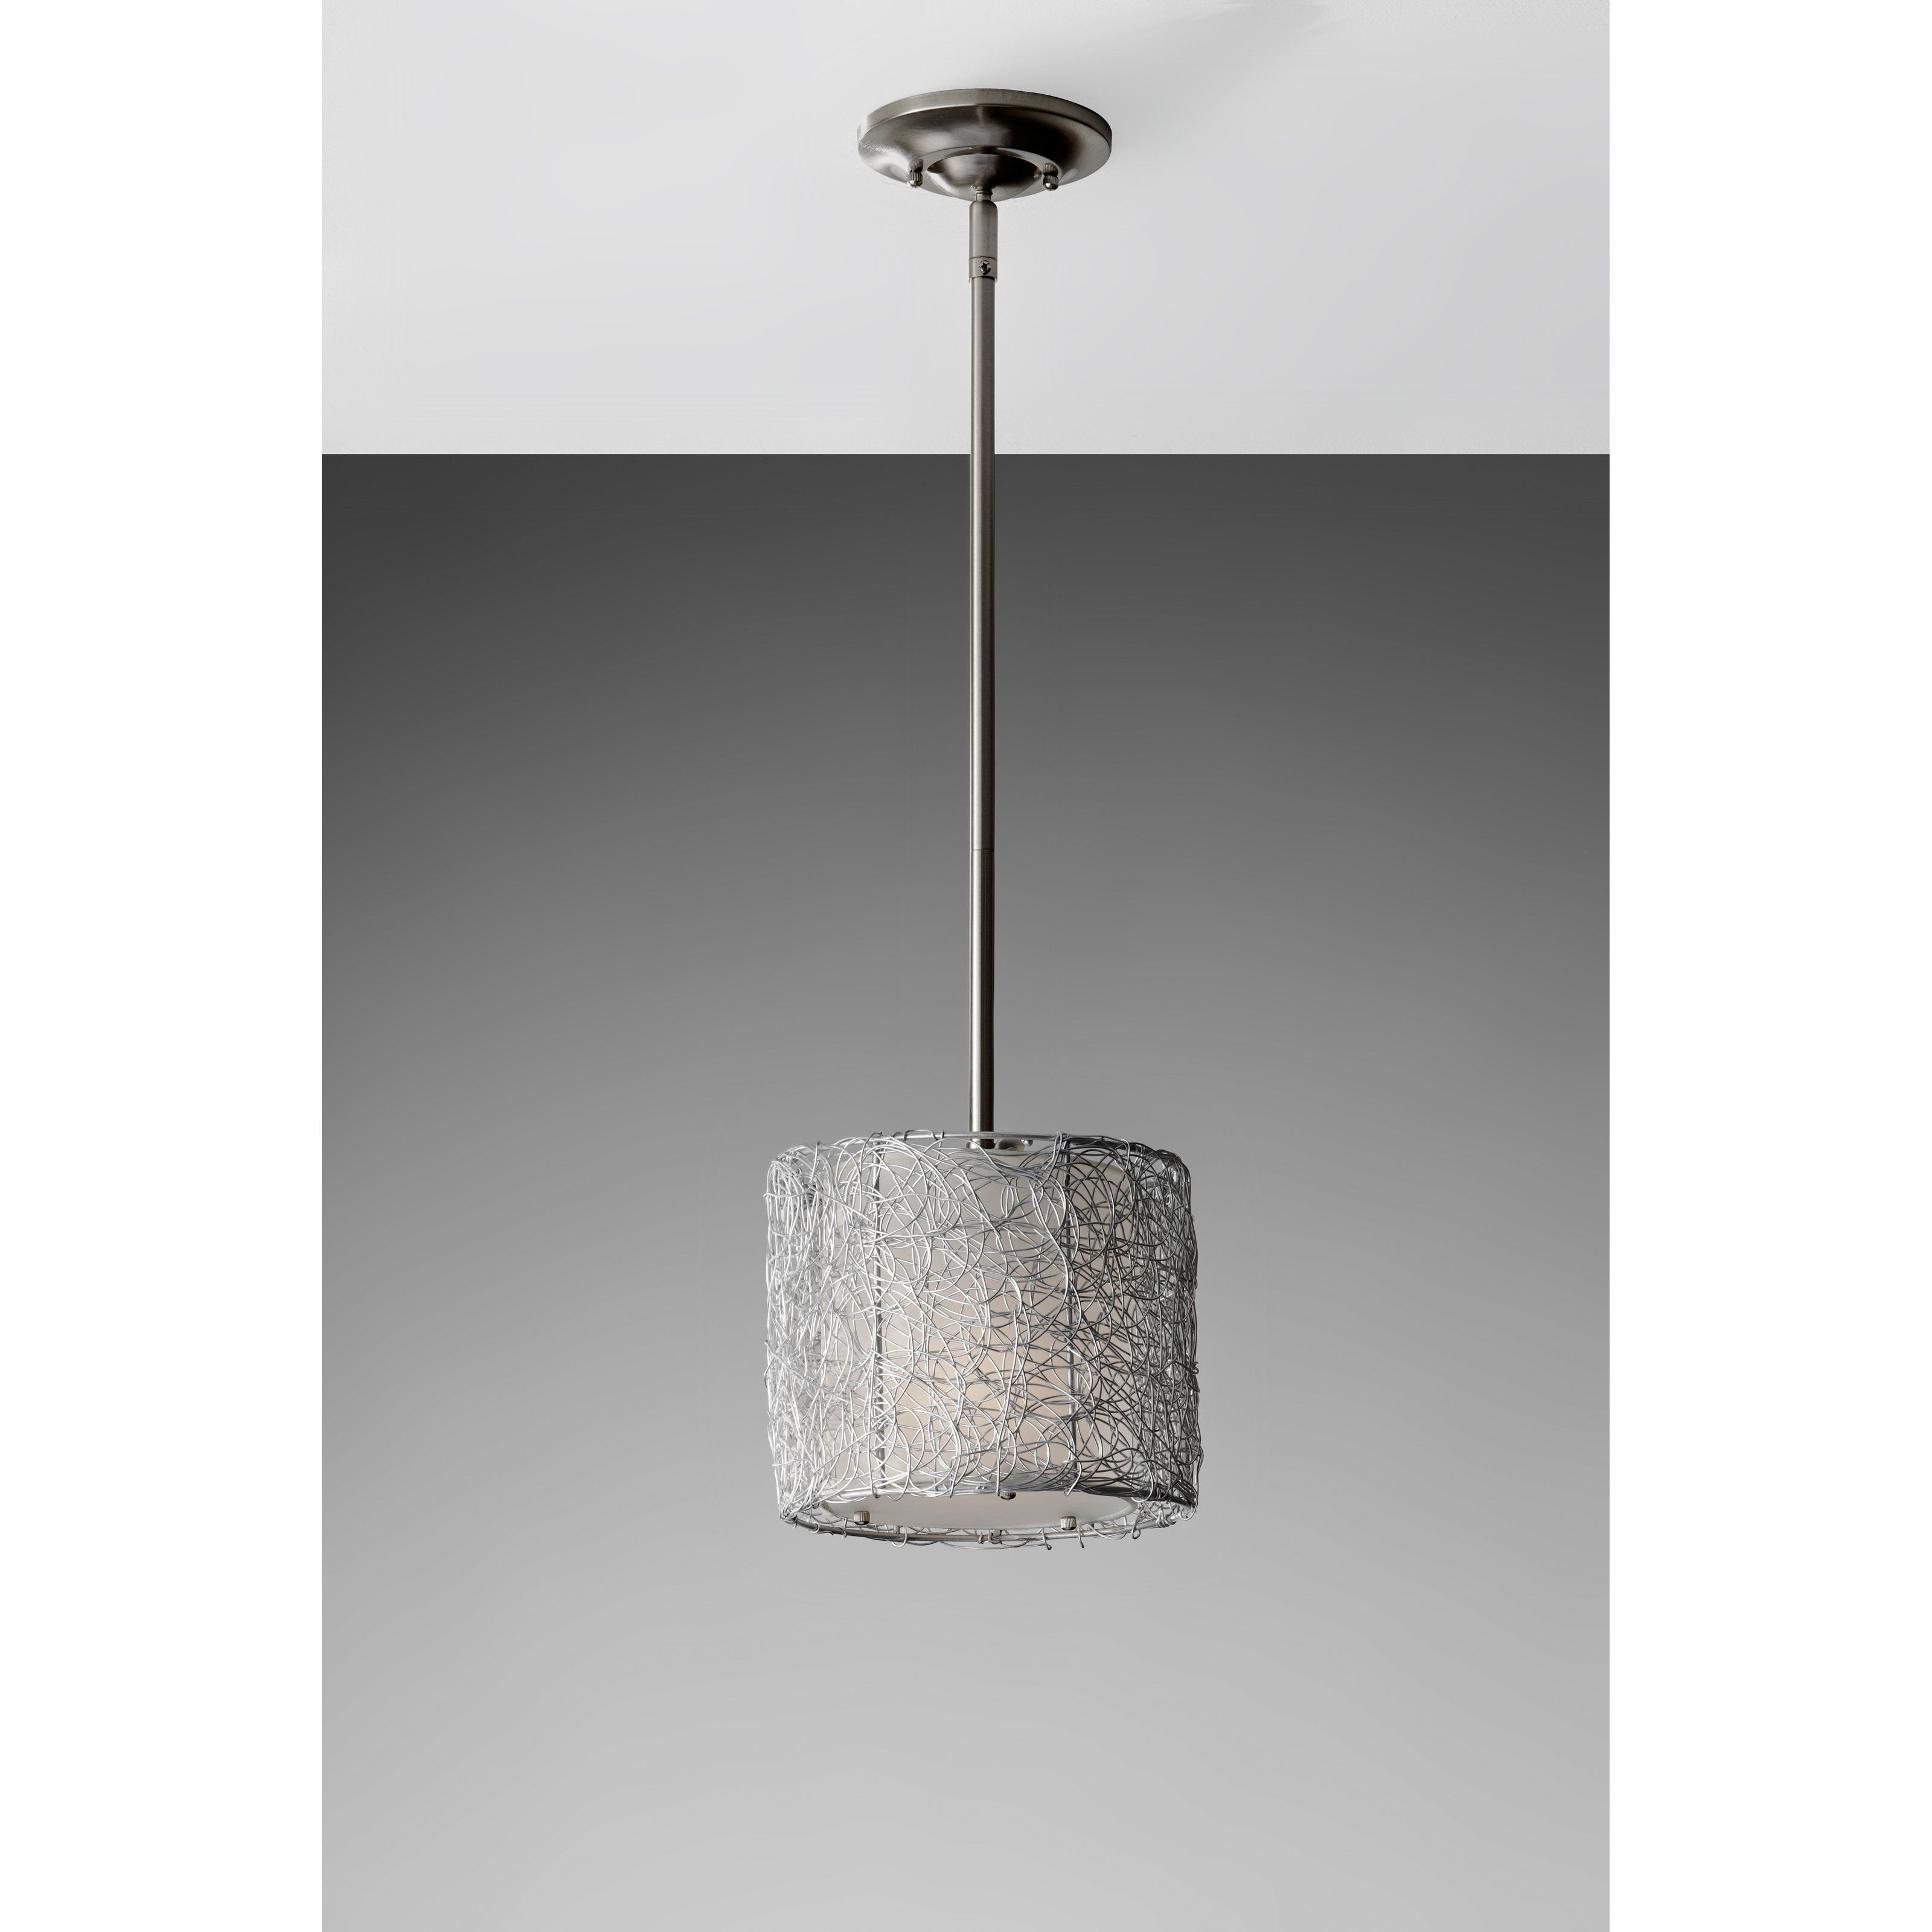 Feiss wired p1250bs mini pendant 8w in brushed steel p1250bs one light brushed steel silver organza fabric shade drum shade mini pendant aloadofball Gallery